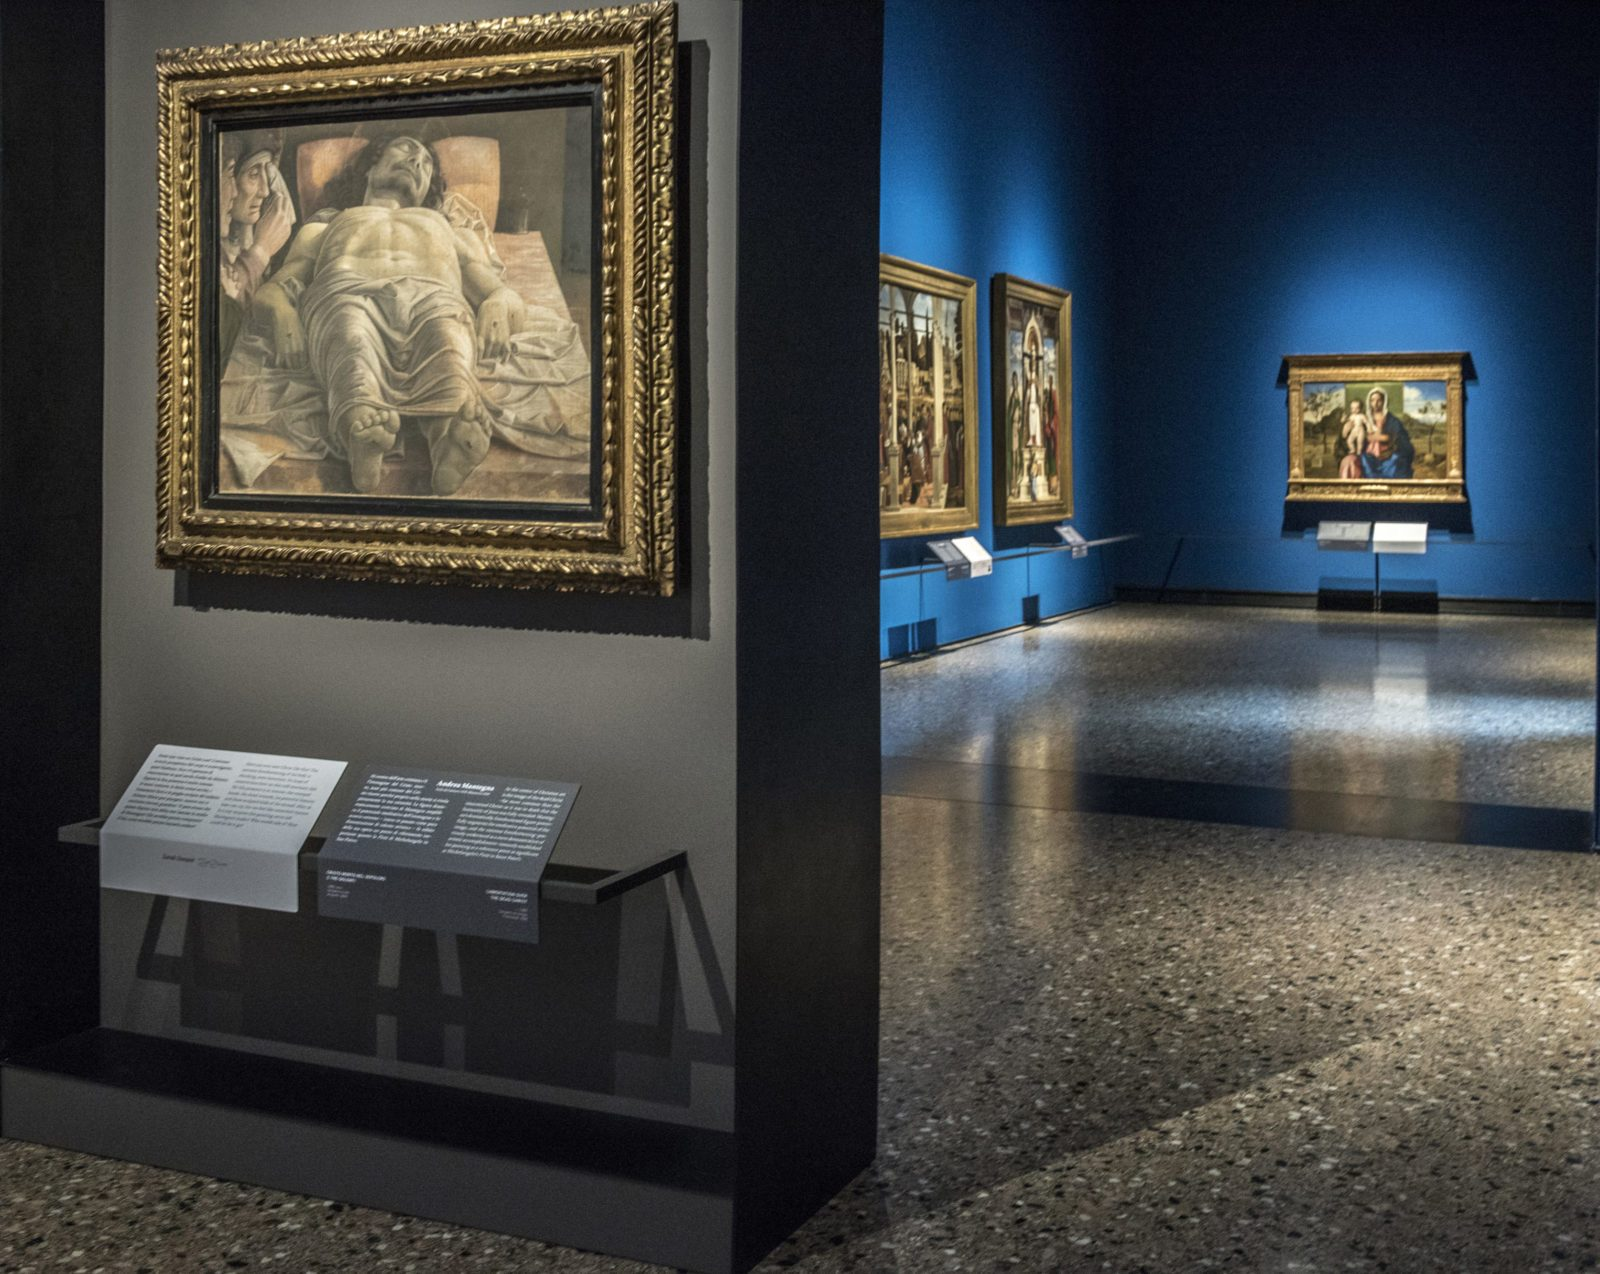 pinacoteca di brera art gallery milan guided tour walking tour